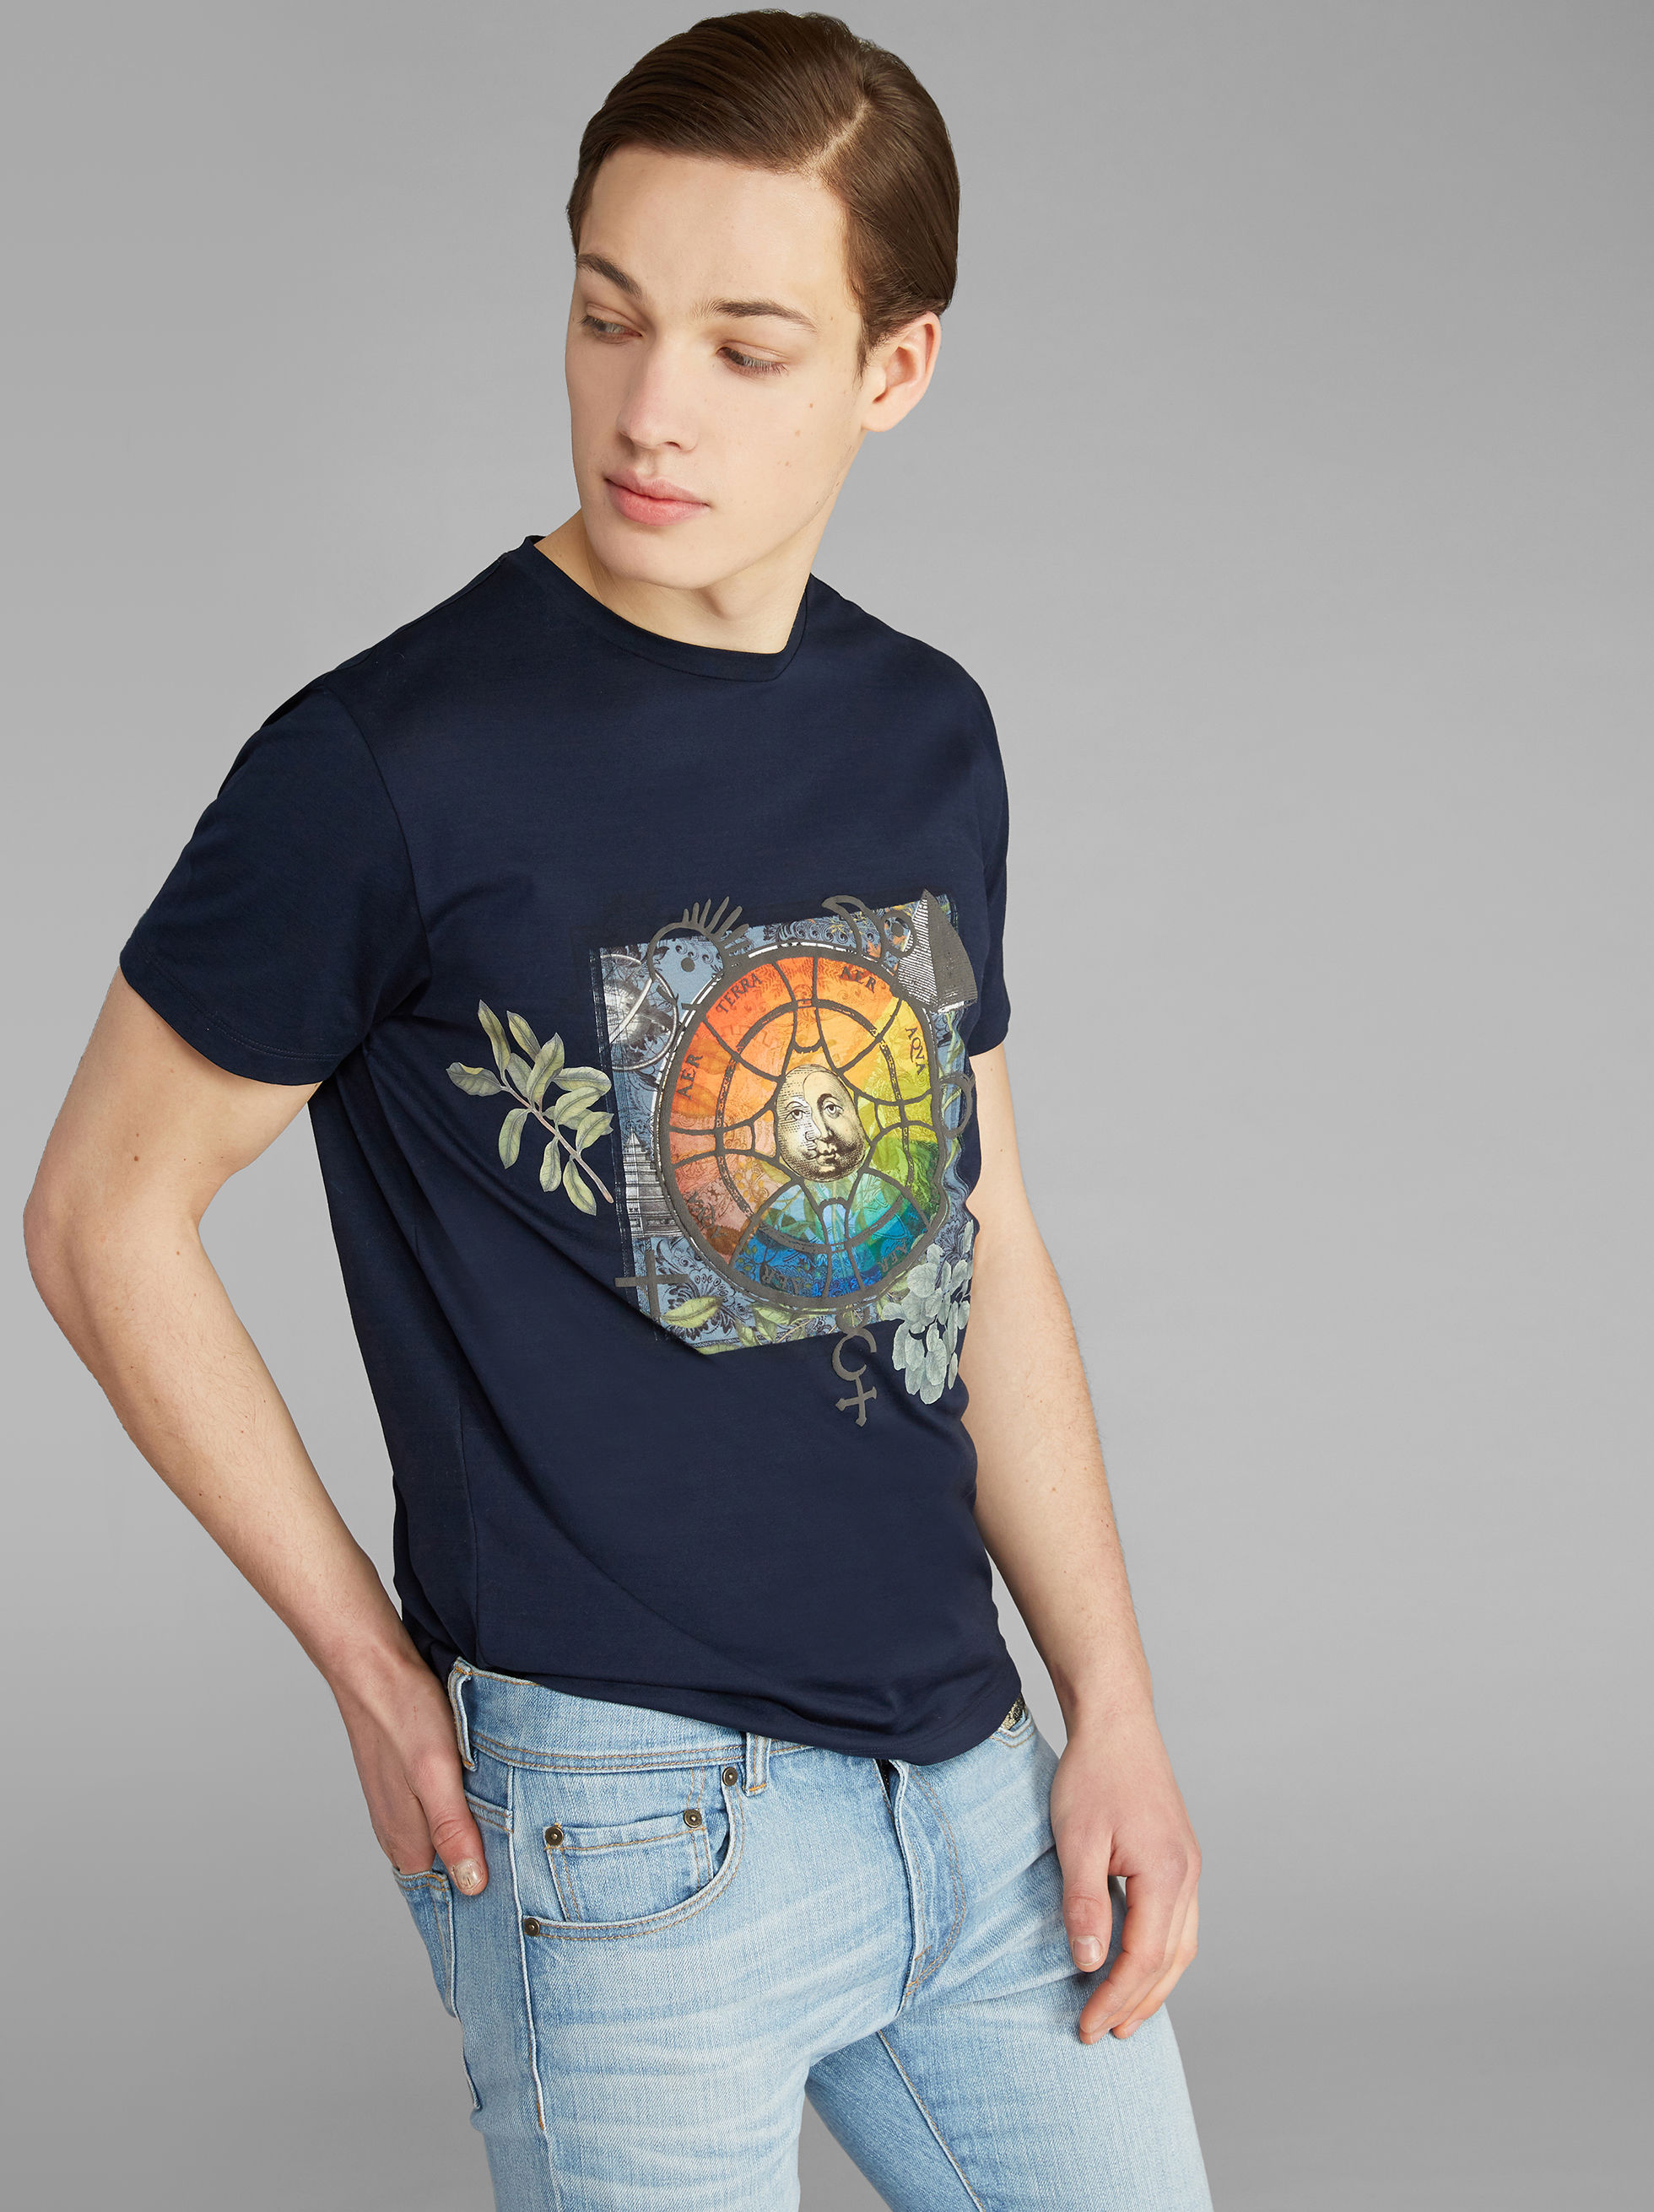 T-SHIRT STAMPA MEDIEVALE